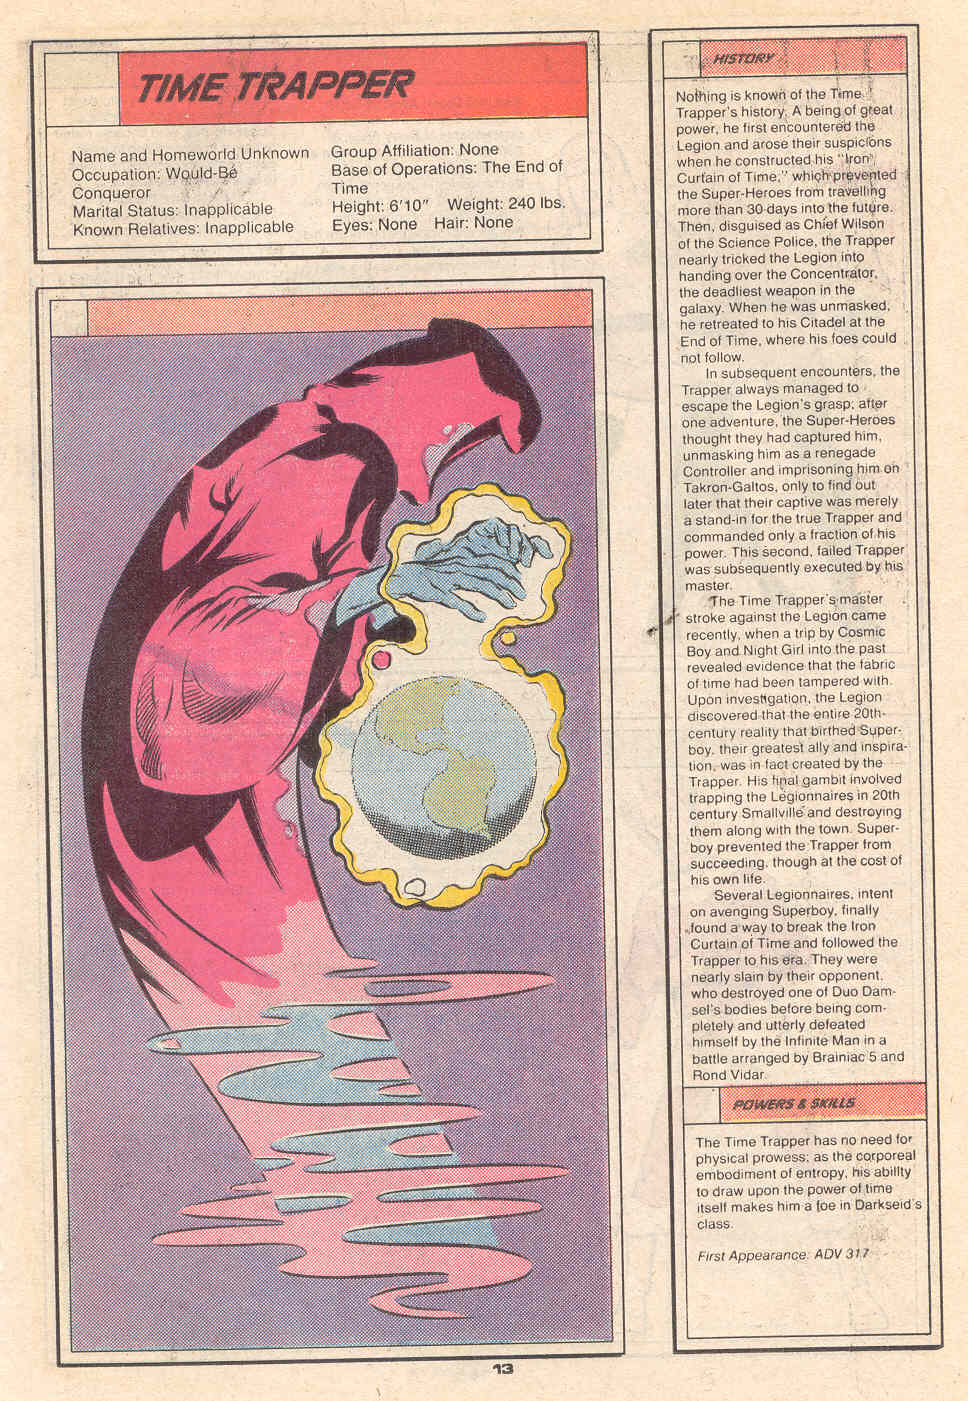 Time Trapper by Mike DeCarlo - Who's Who in the Legion of Super-Heroes #7